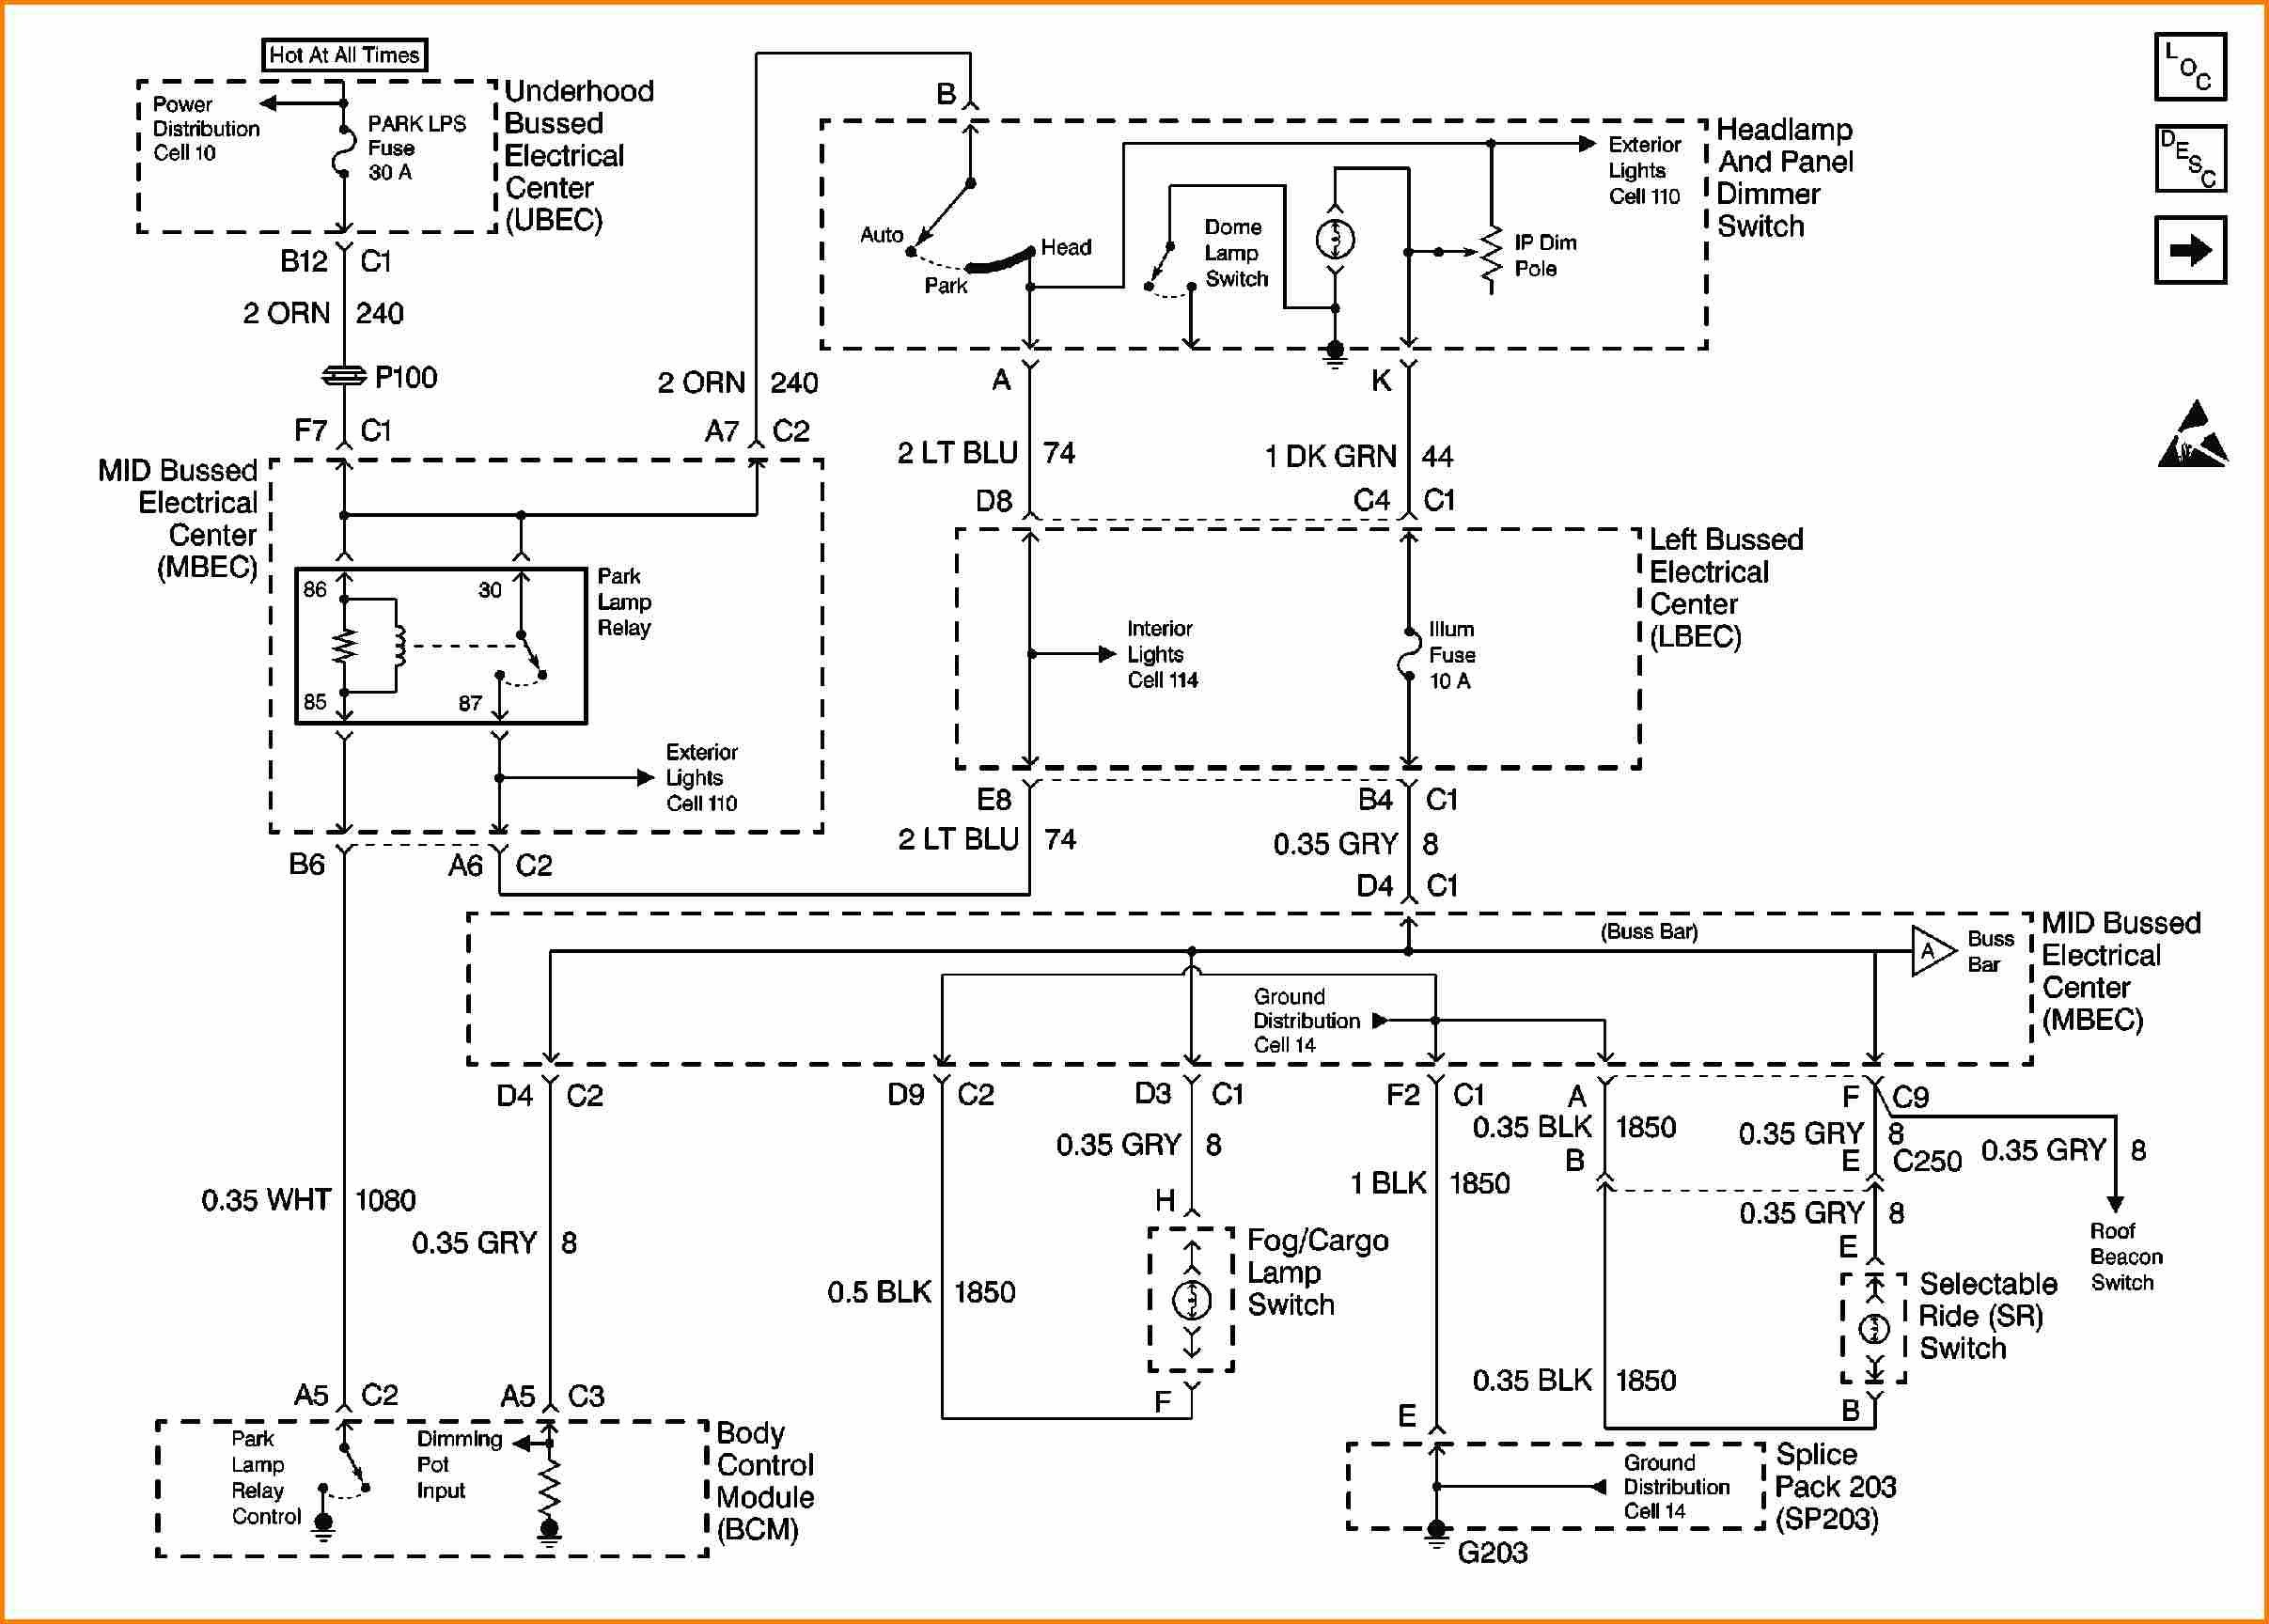 Cavalier Wiring Diagram - seniorsclub.it wires-haunt - wires -haunt.seniorsclub.itwires-haunt.seniorsclub.it